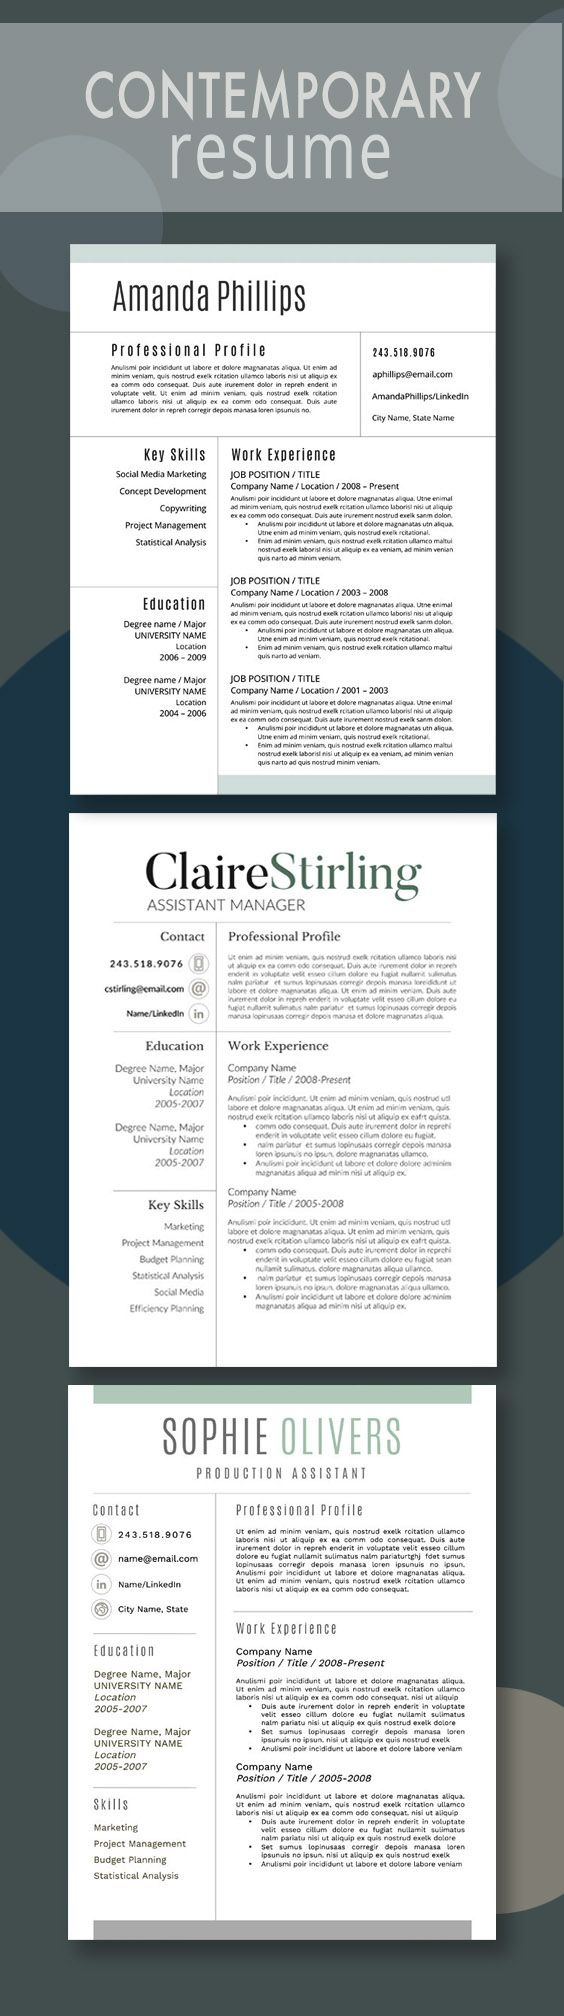 super happy my resume template great service easy to use super happy my resume template great service easy to use microsoft word